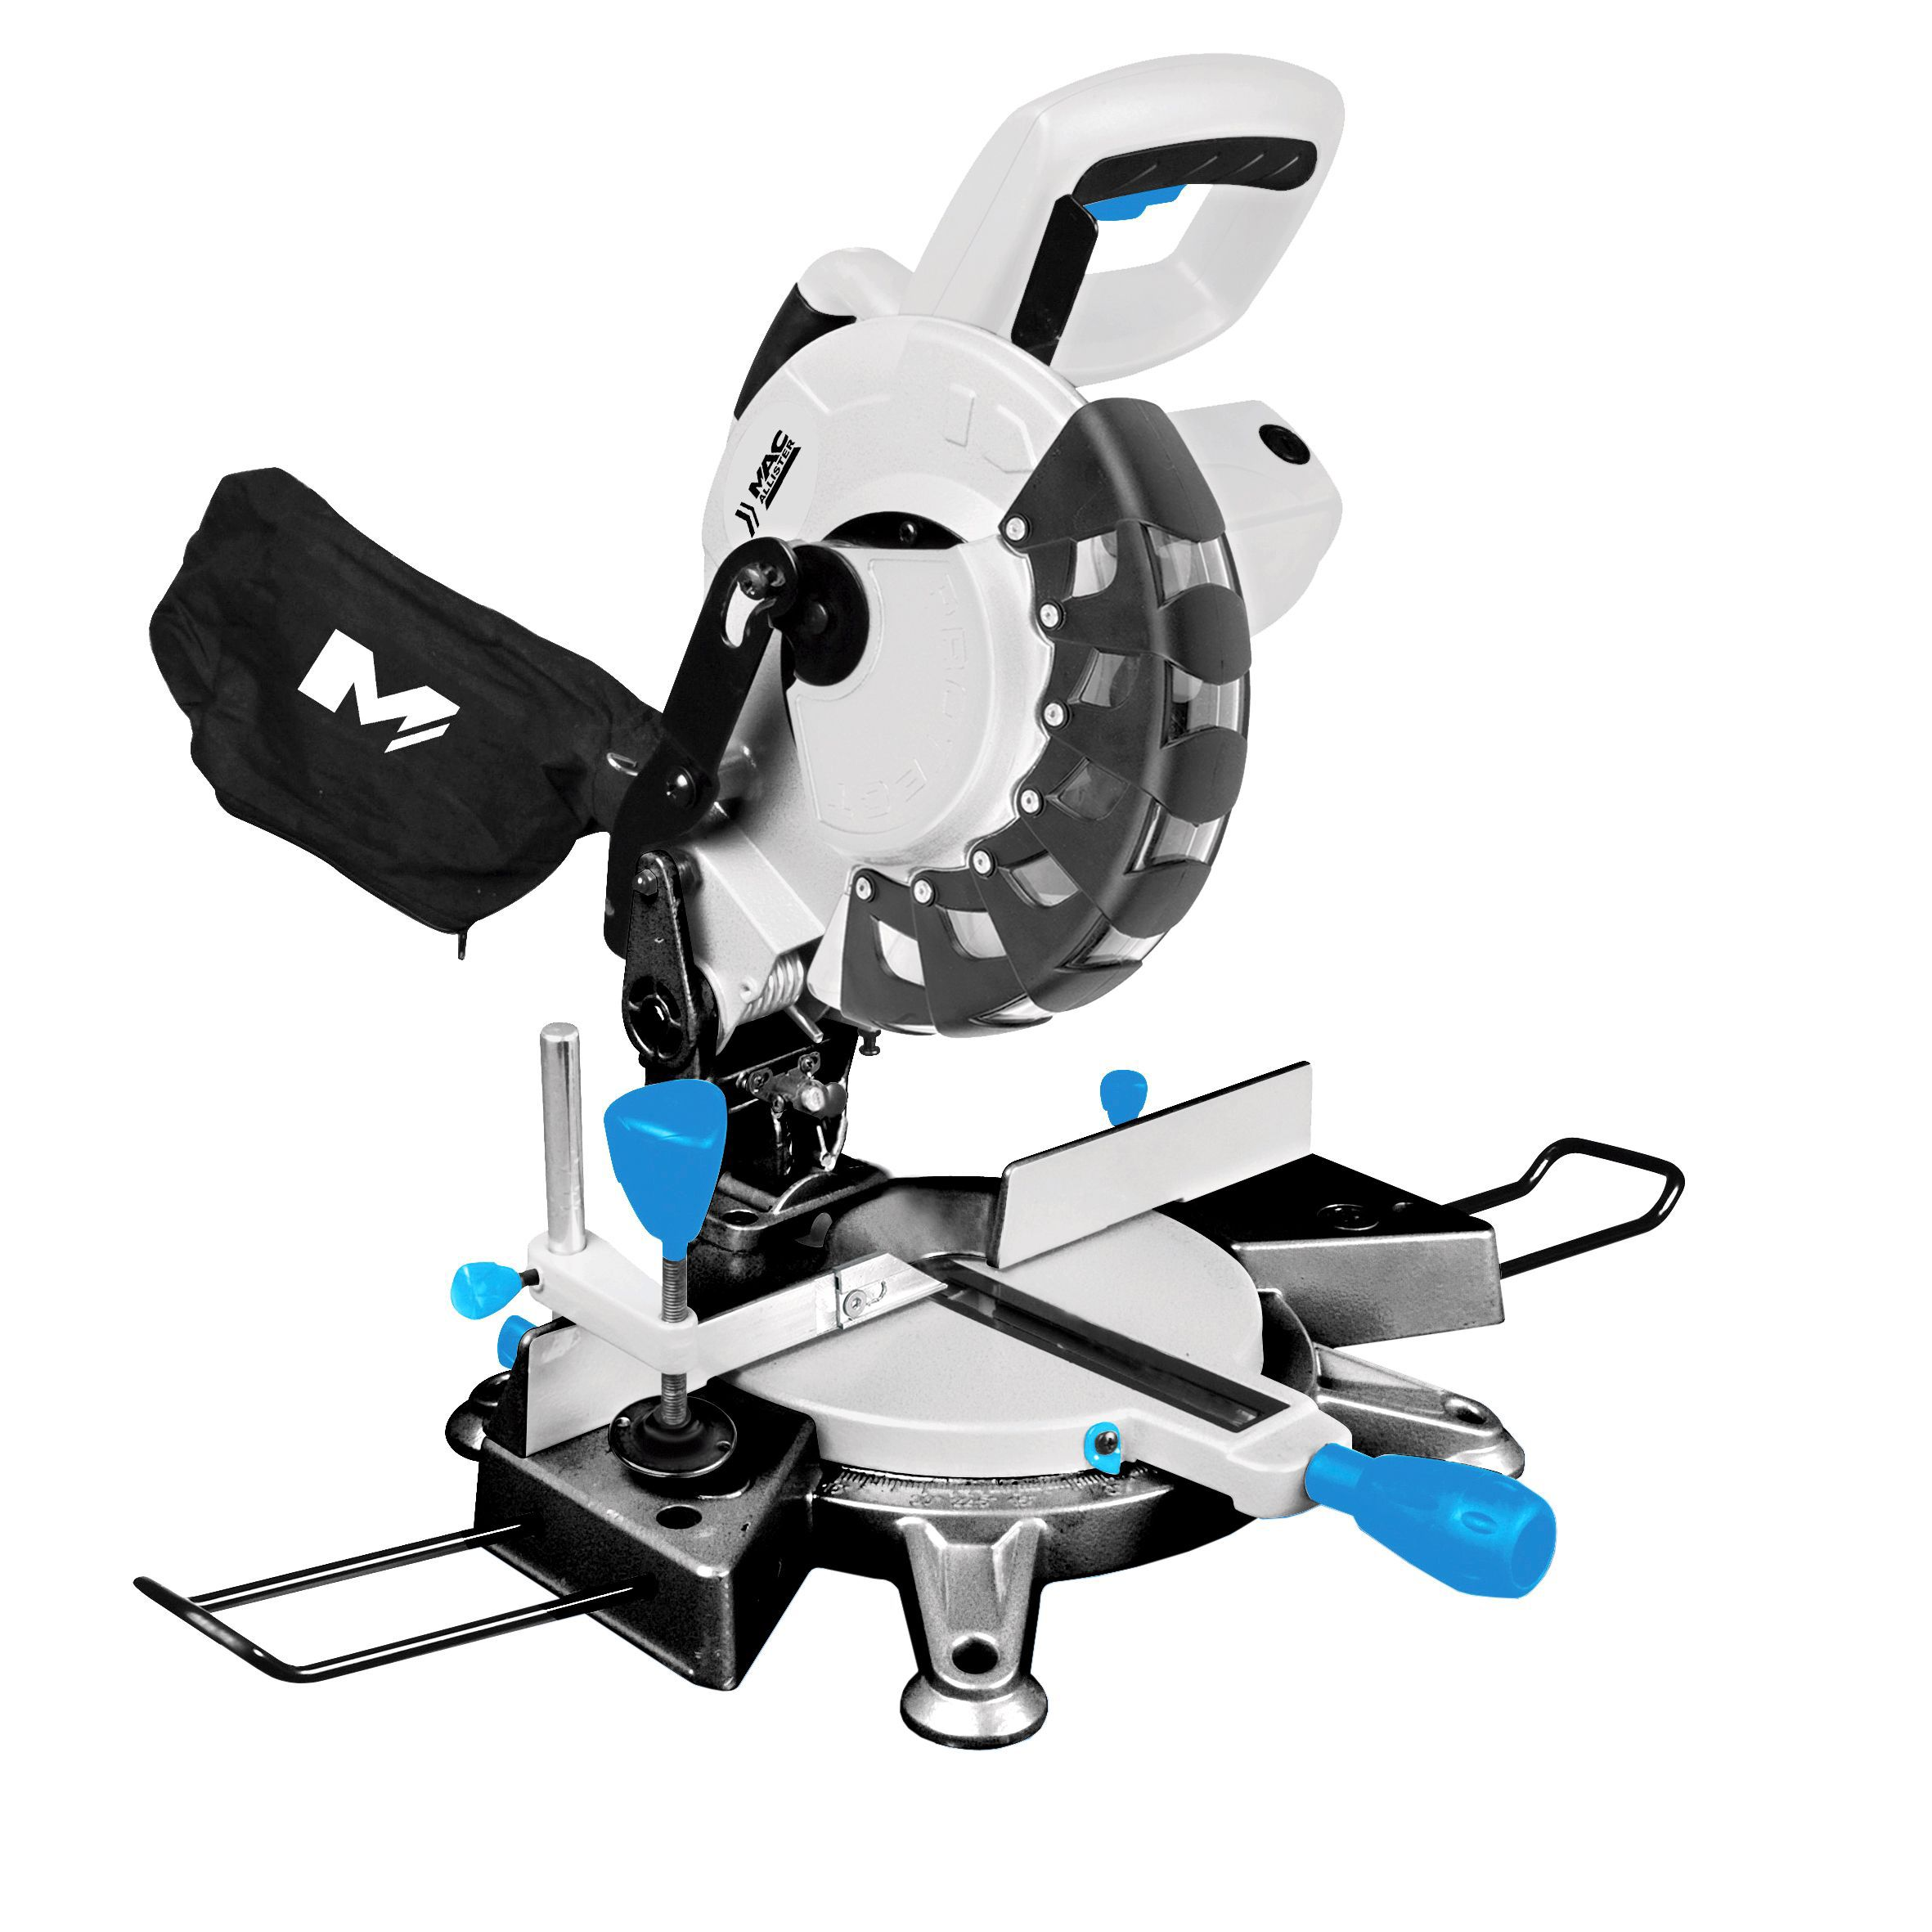 Mac Allister 1700w 230v 210mm Compound Mitre Saw Mmsp1700l Departments Diy At B Q